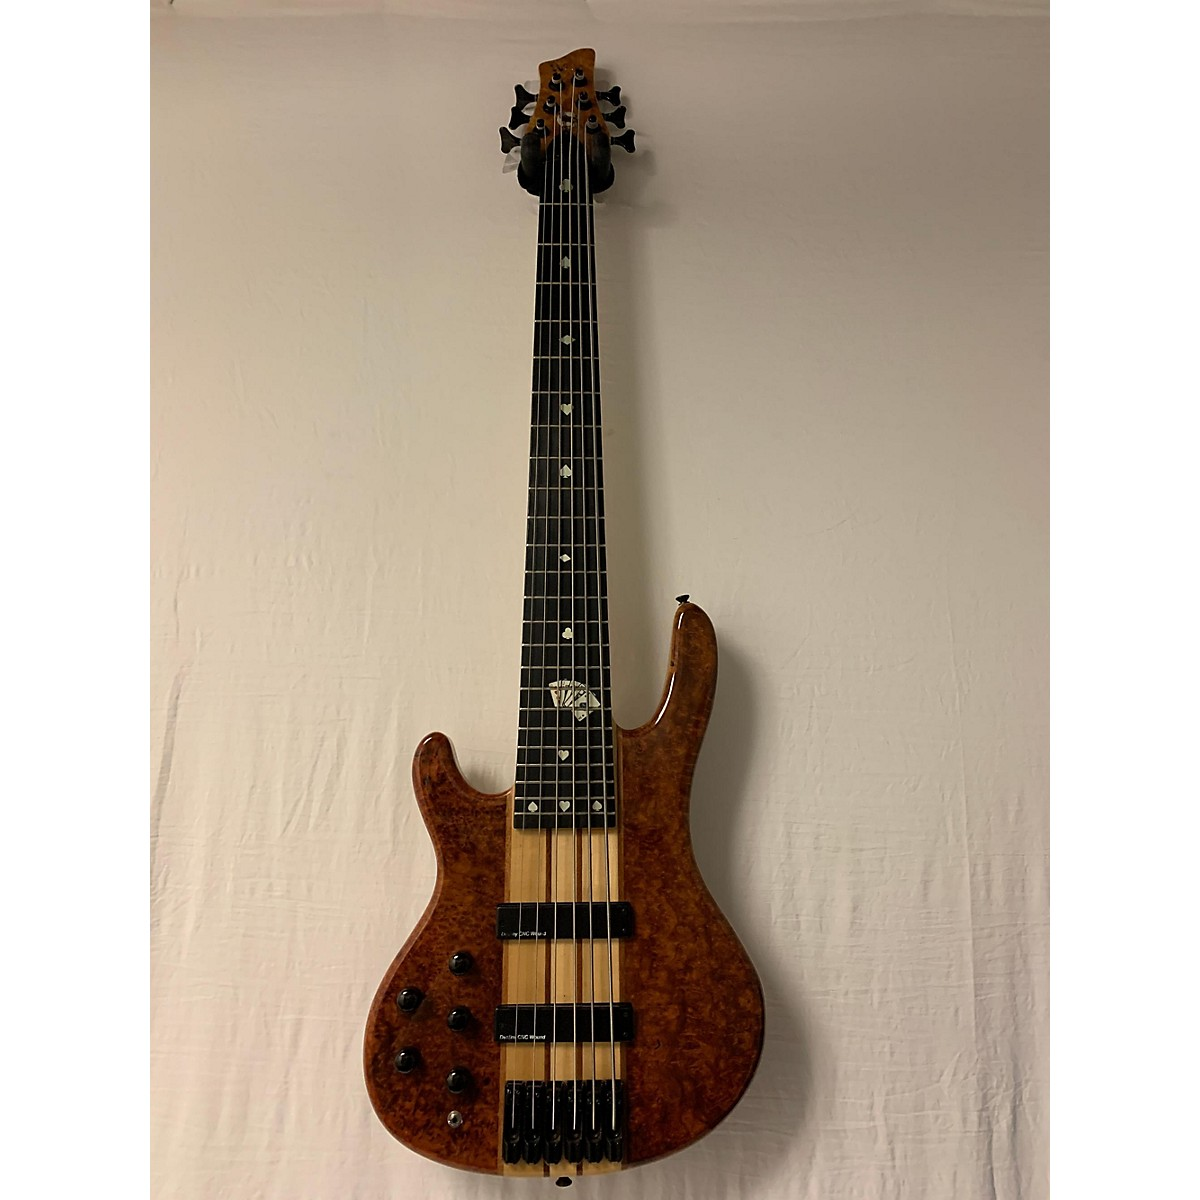 Wolf S9 Electric Bass Guitar